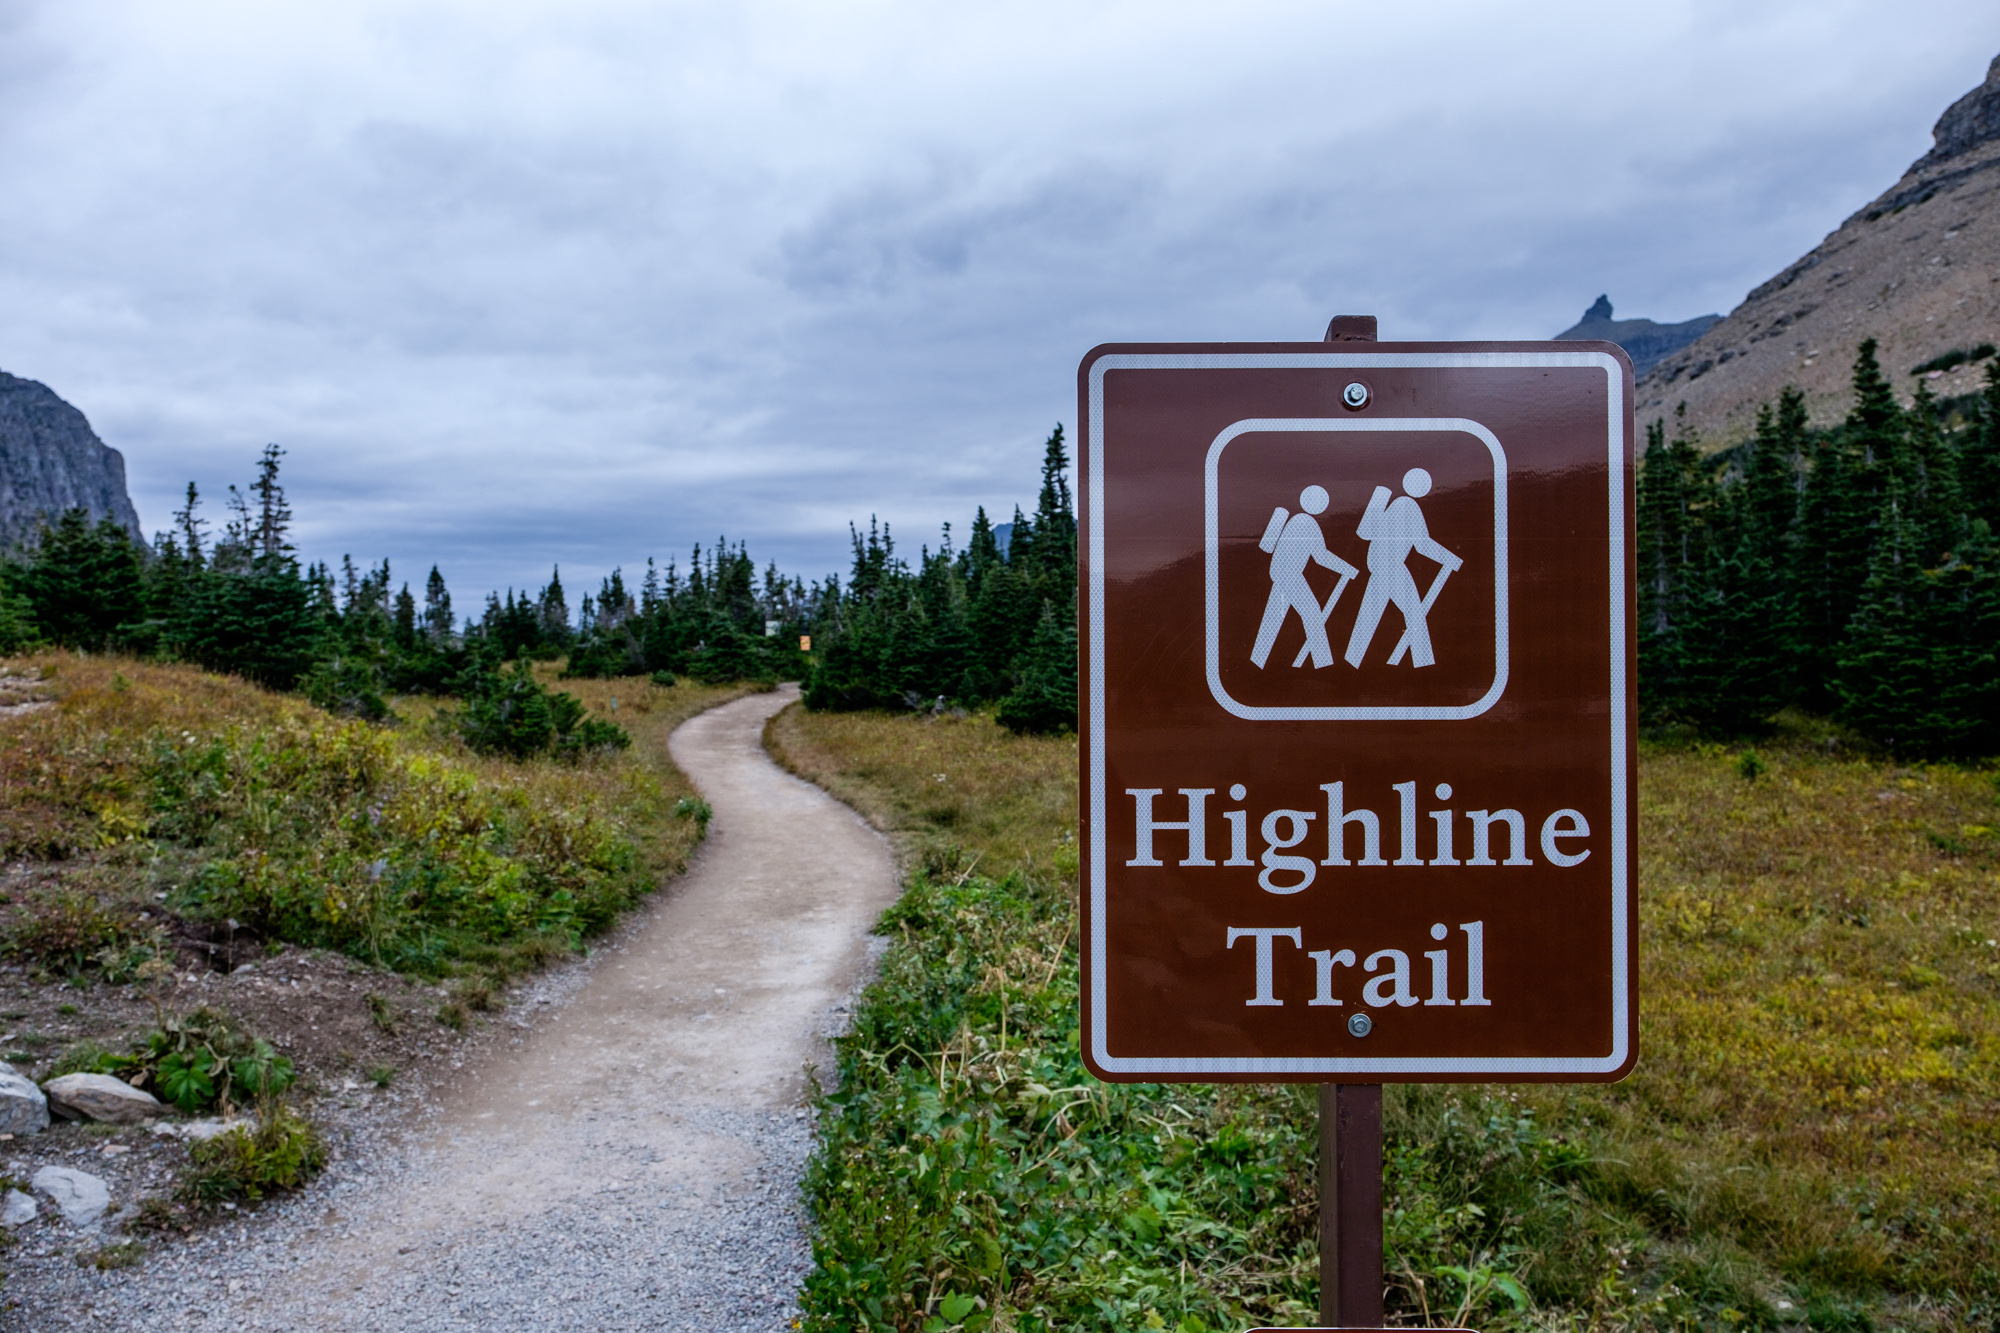 Another epic hike that we highly suggest: the Highline Trail.